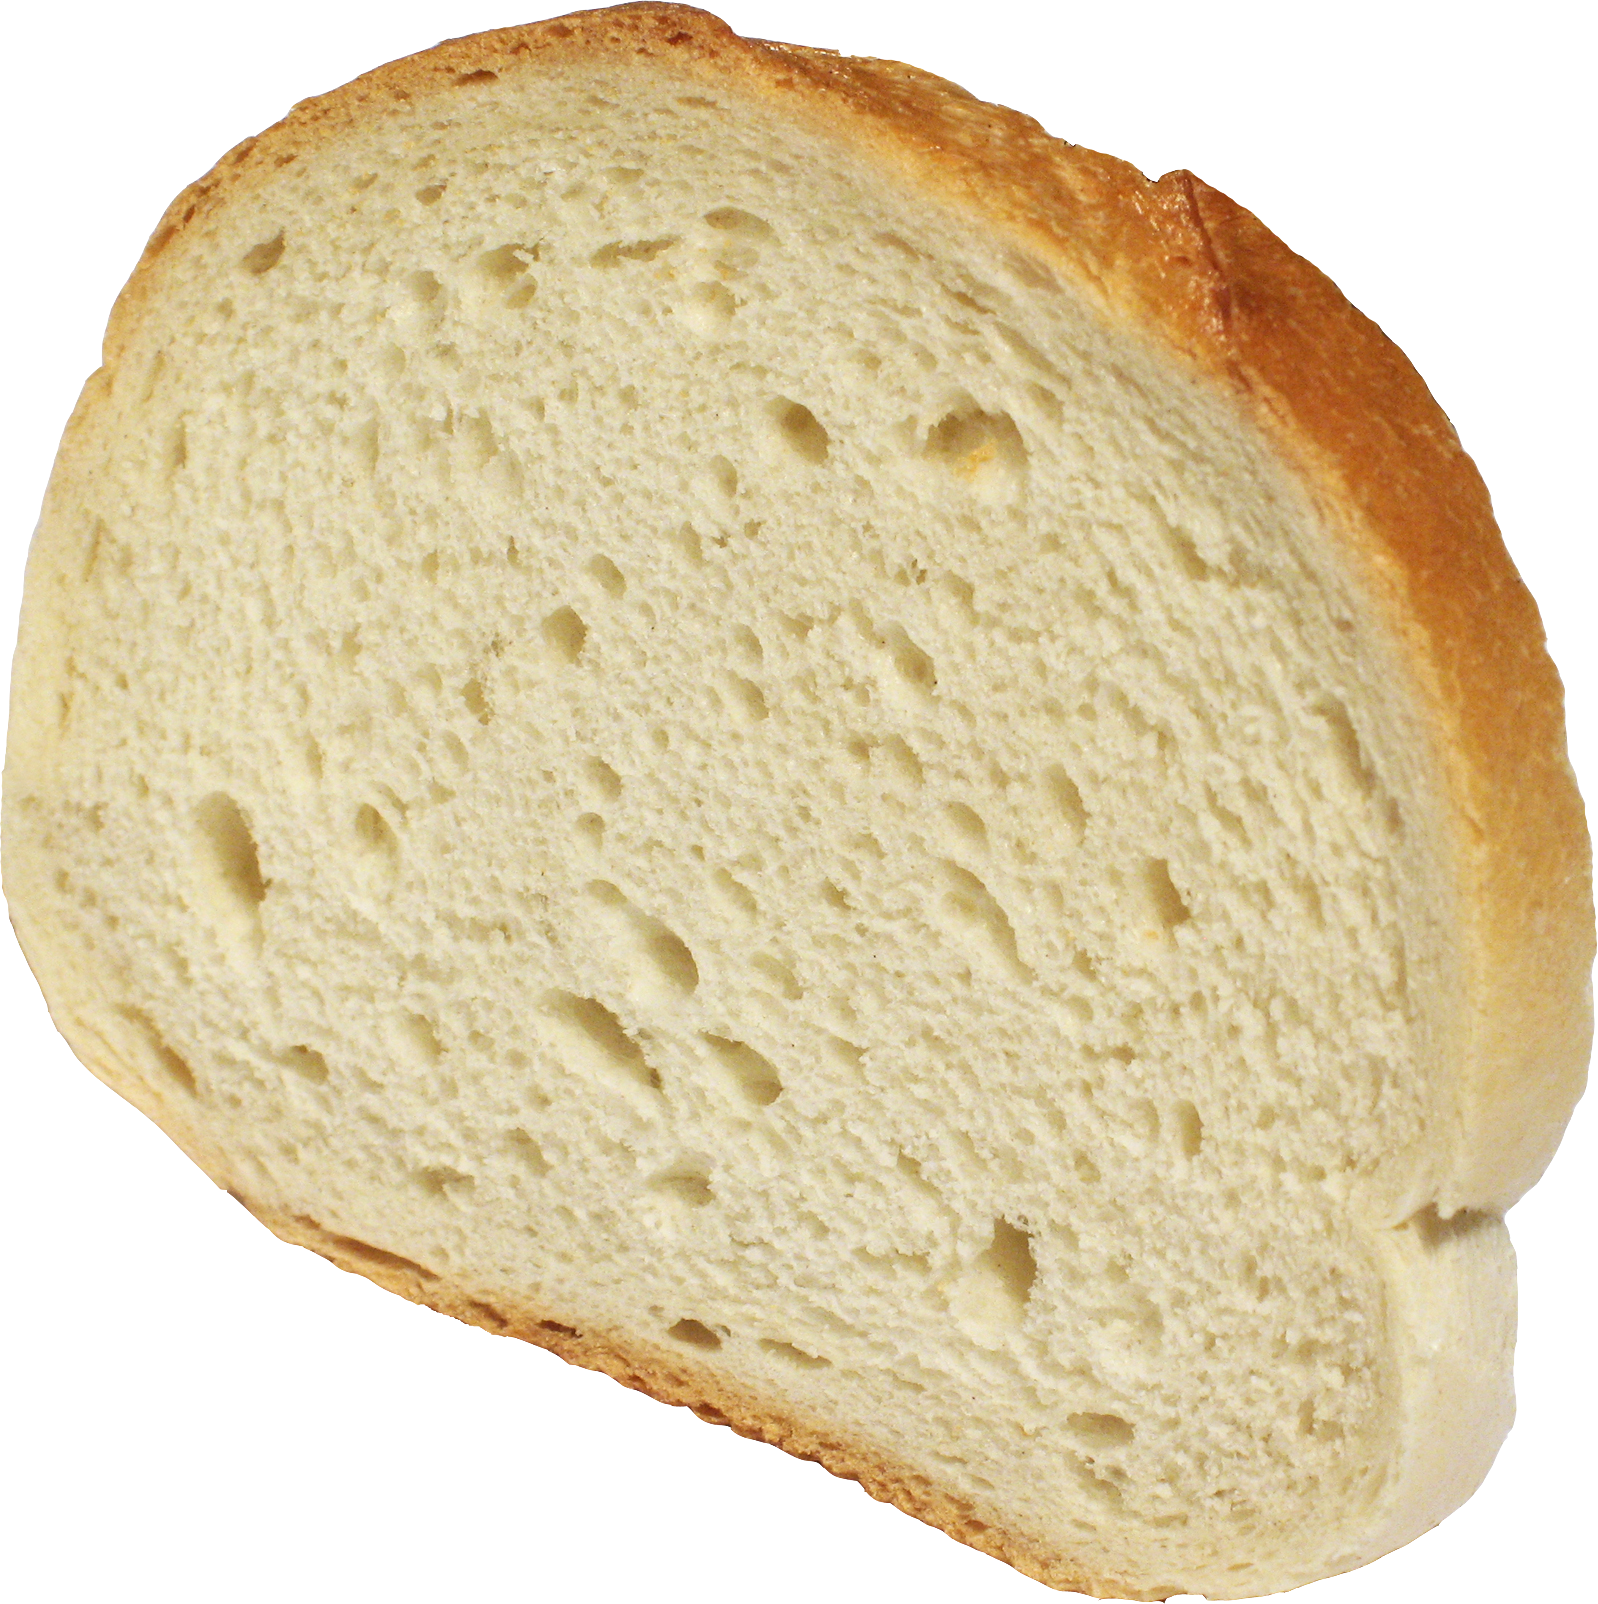 vector library library Transparent bread background. Slice png image purepng